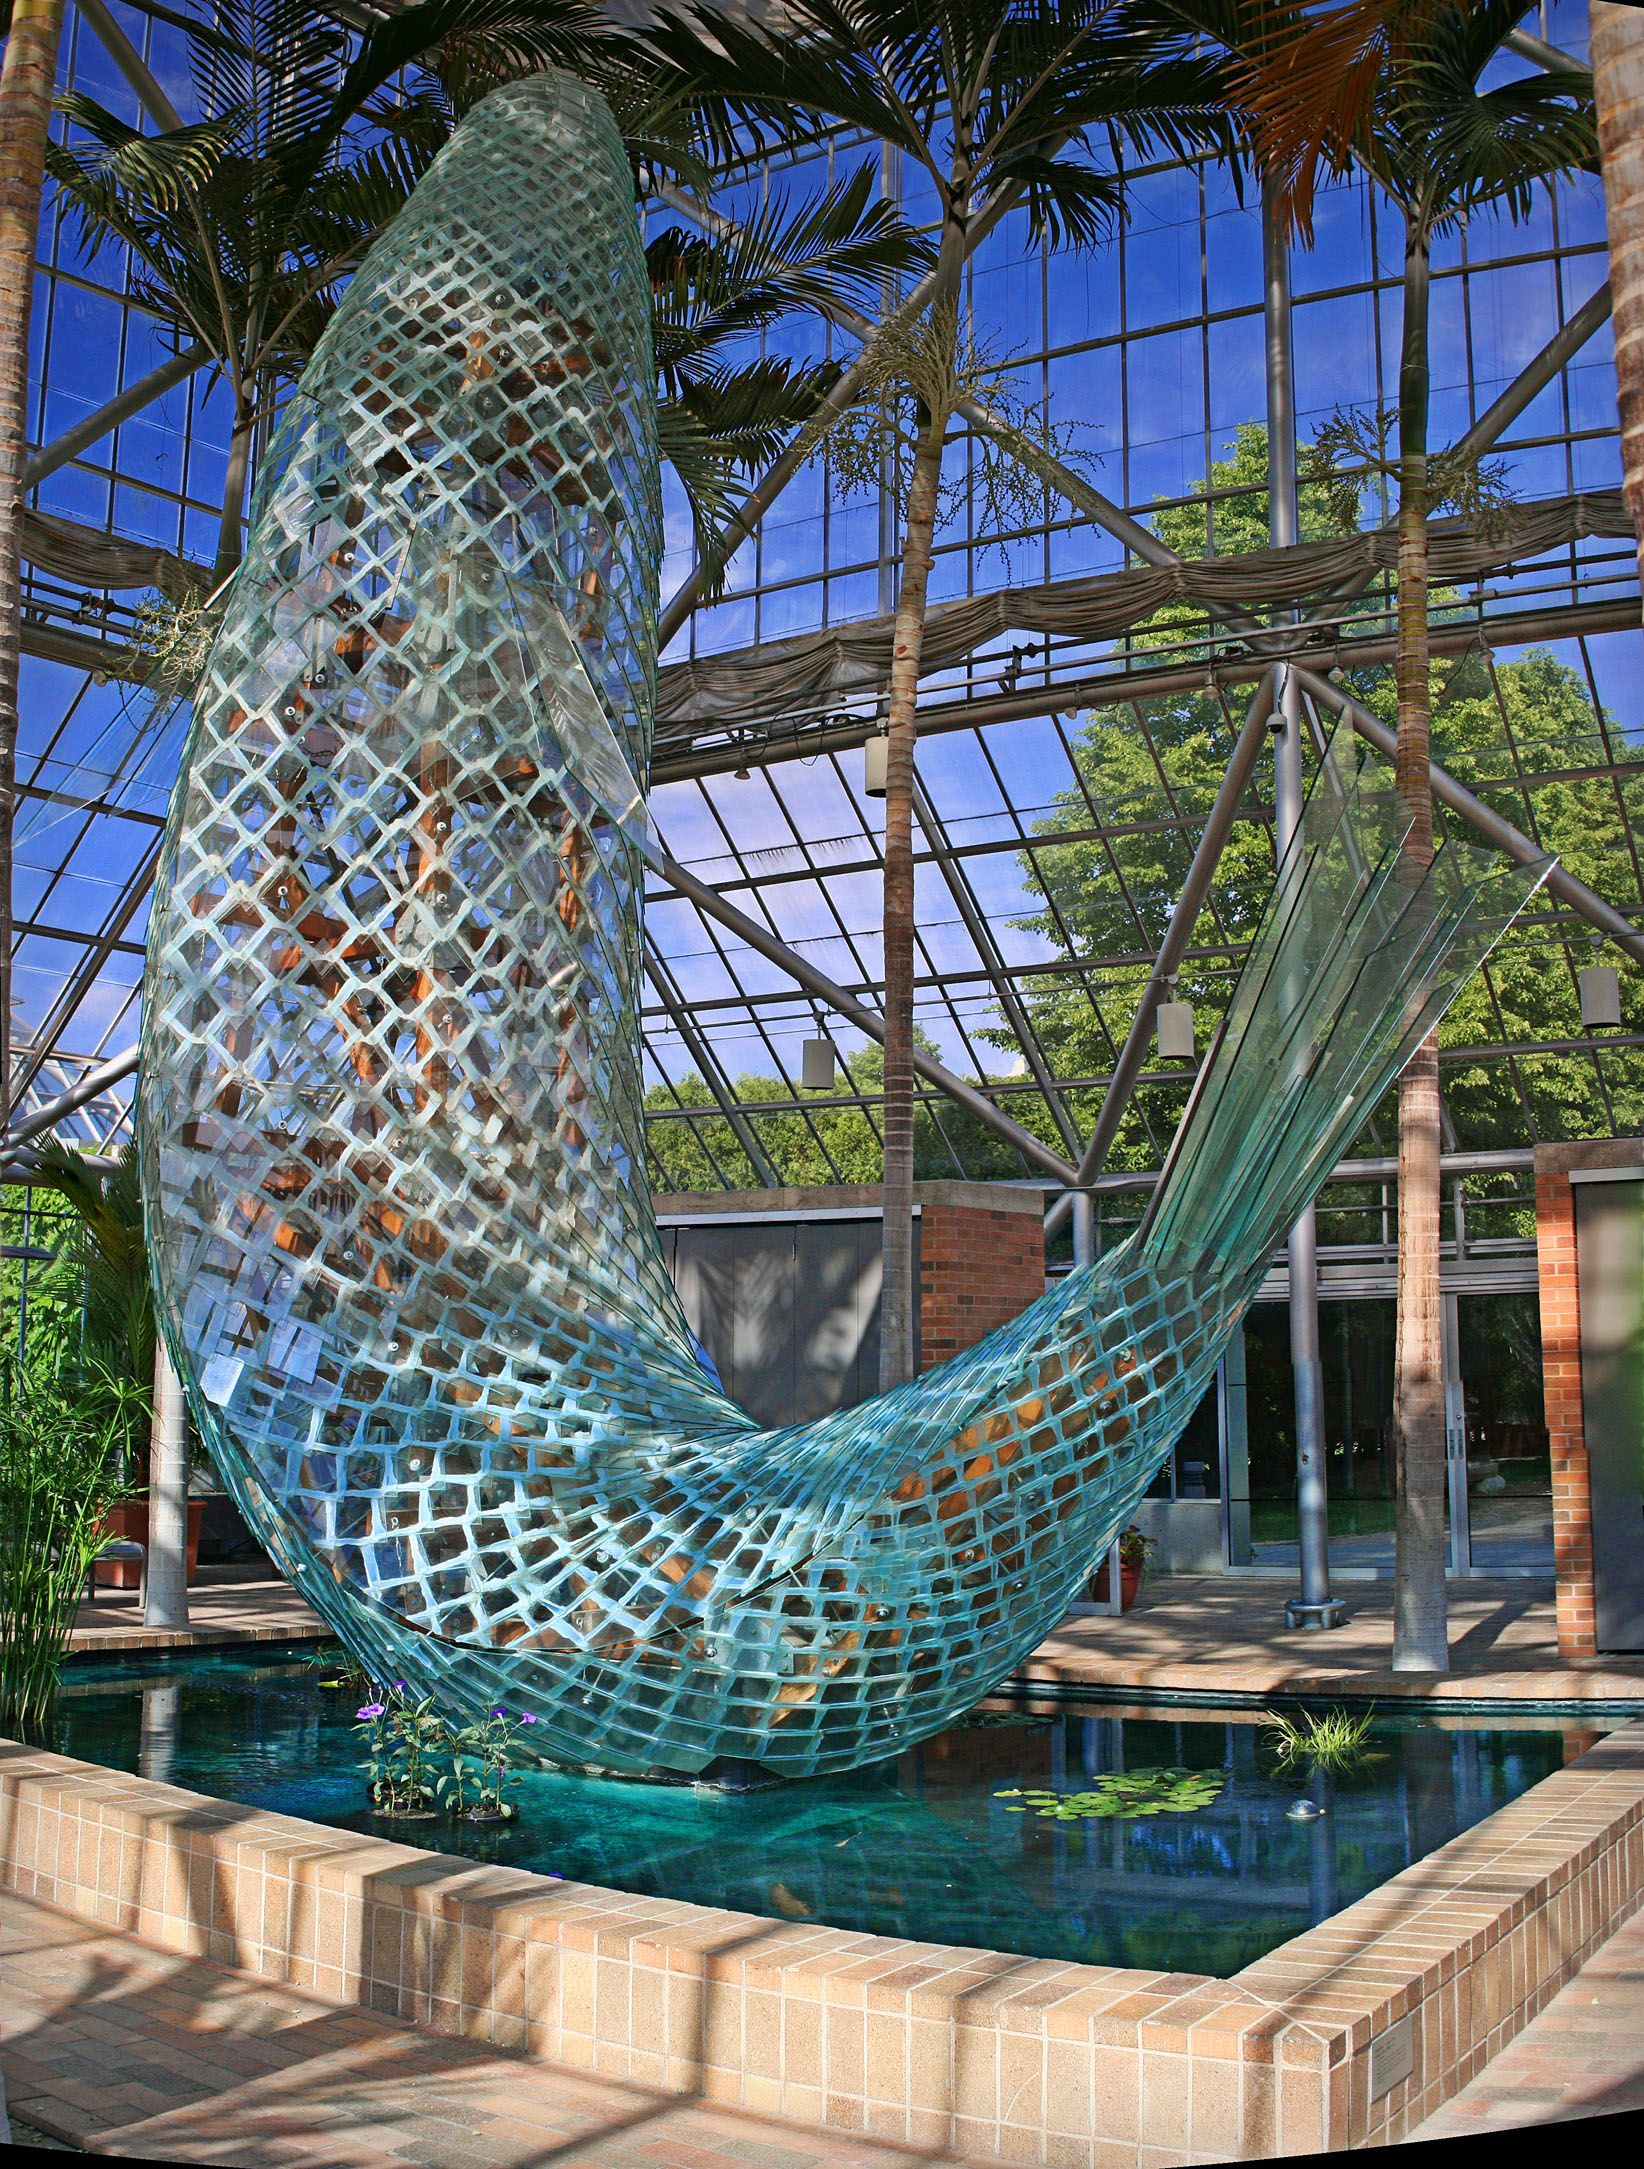 Merveilleux Standing Glass Fish By Frank Gehry In The Minneapolis Sculpture Garden